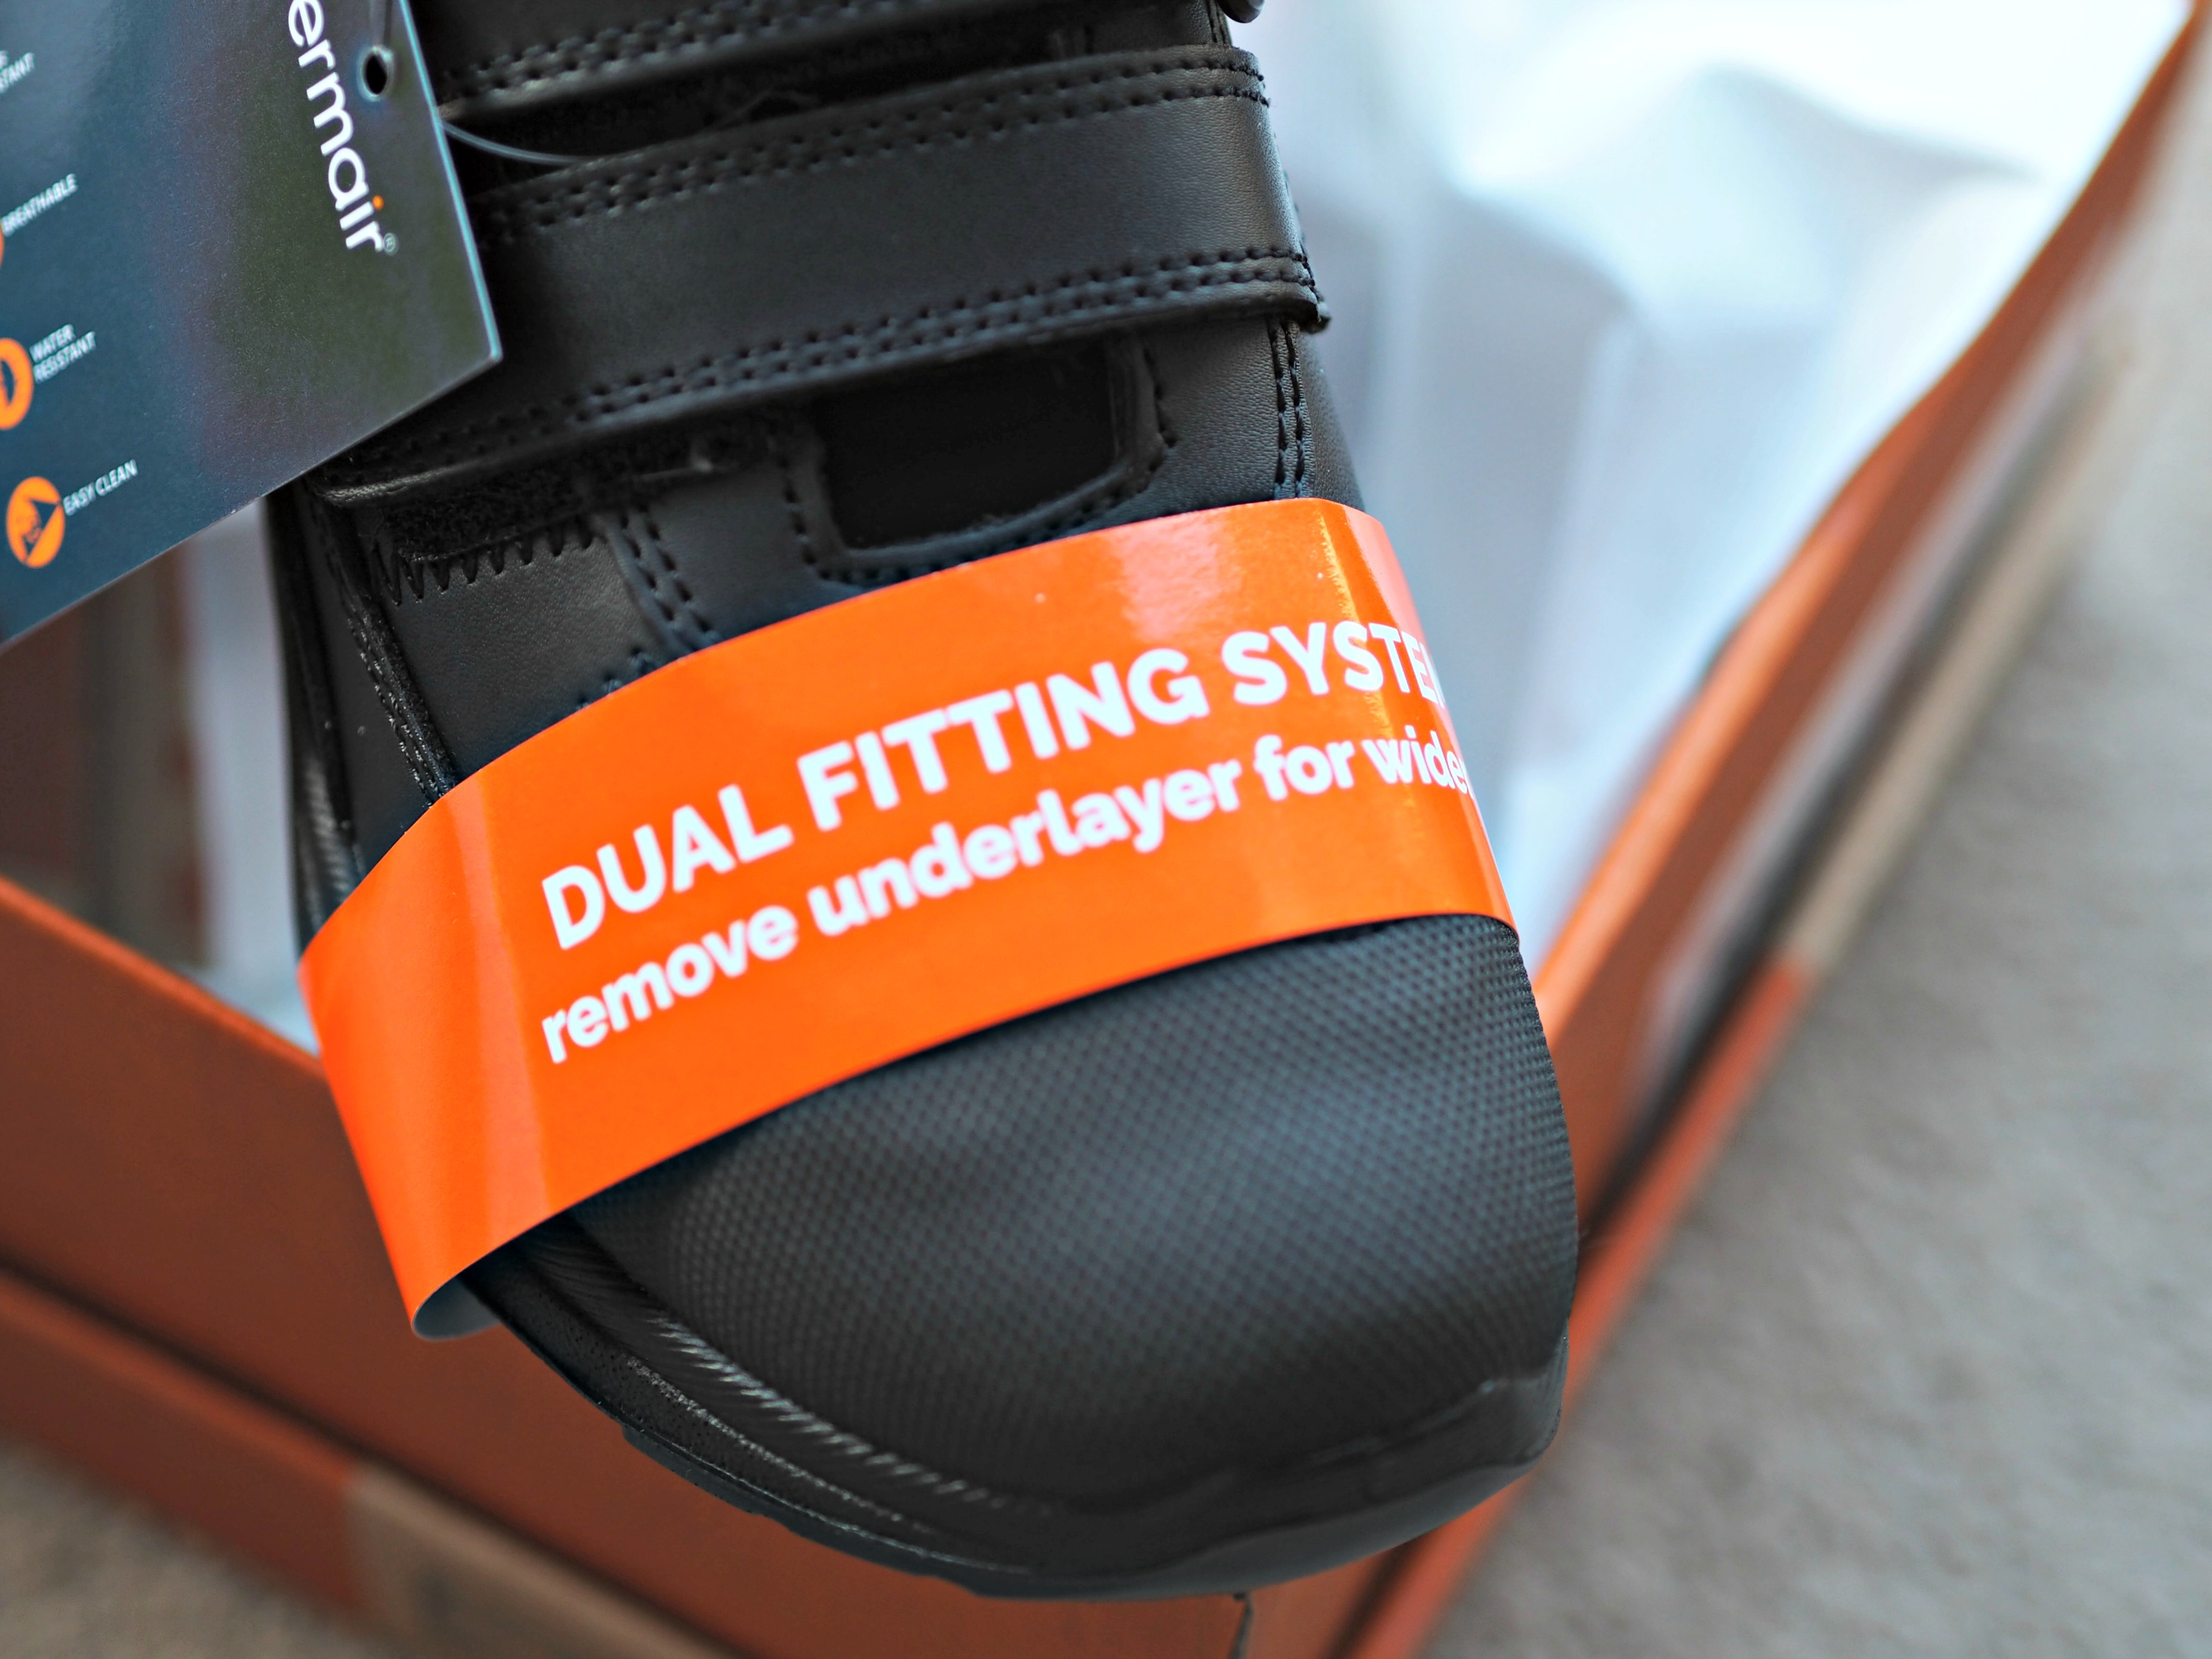 Treads School Shoes with a 12 Month Guarantee Review - dual fitting system